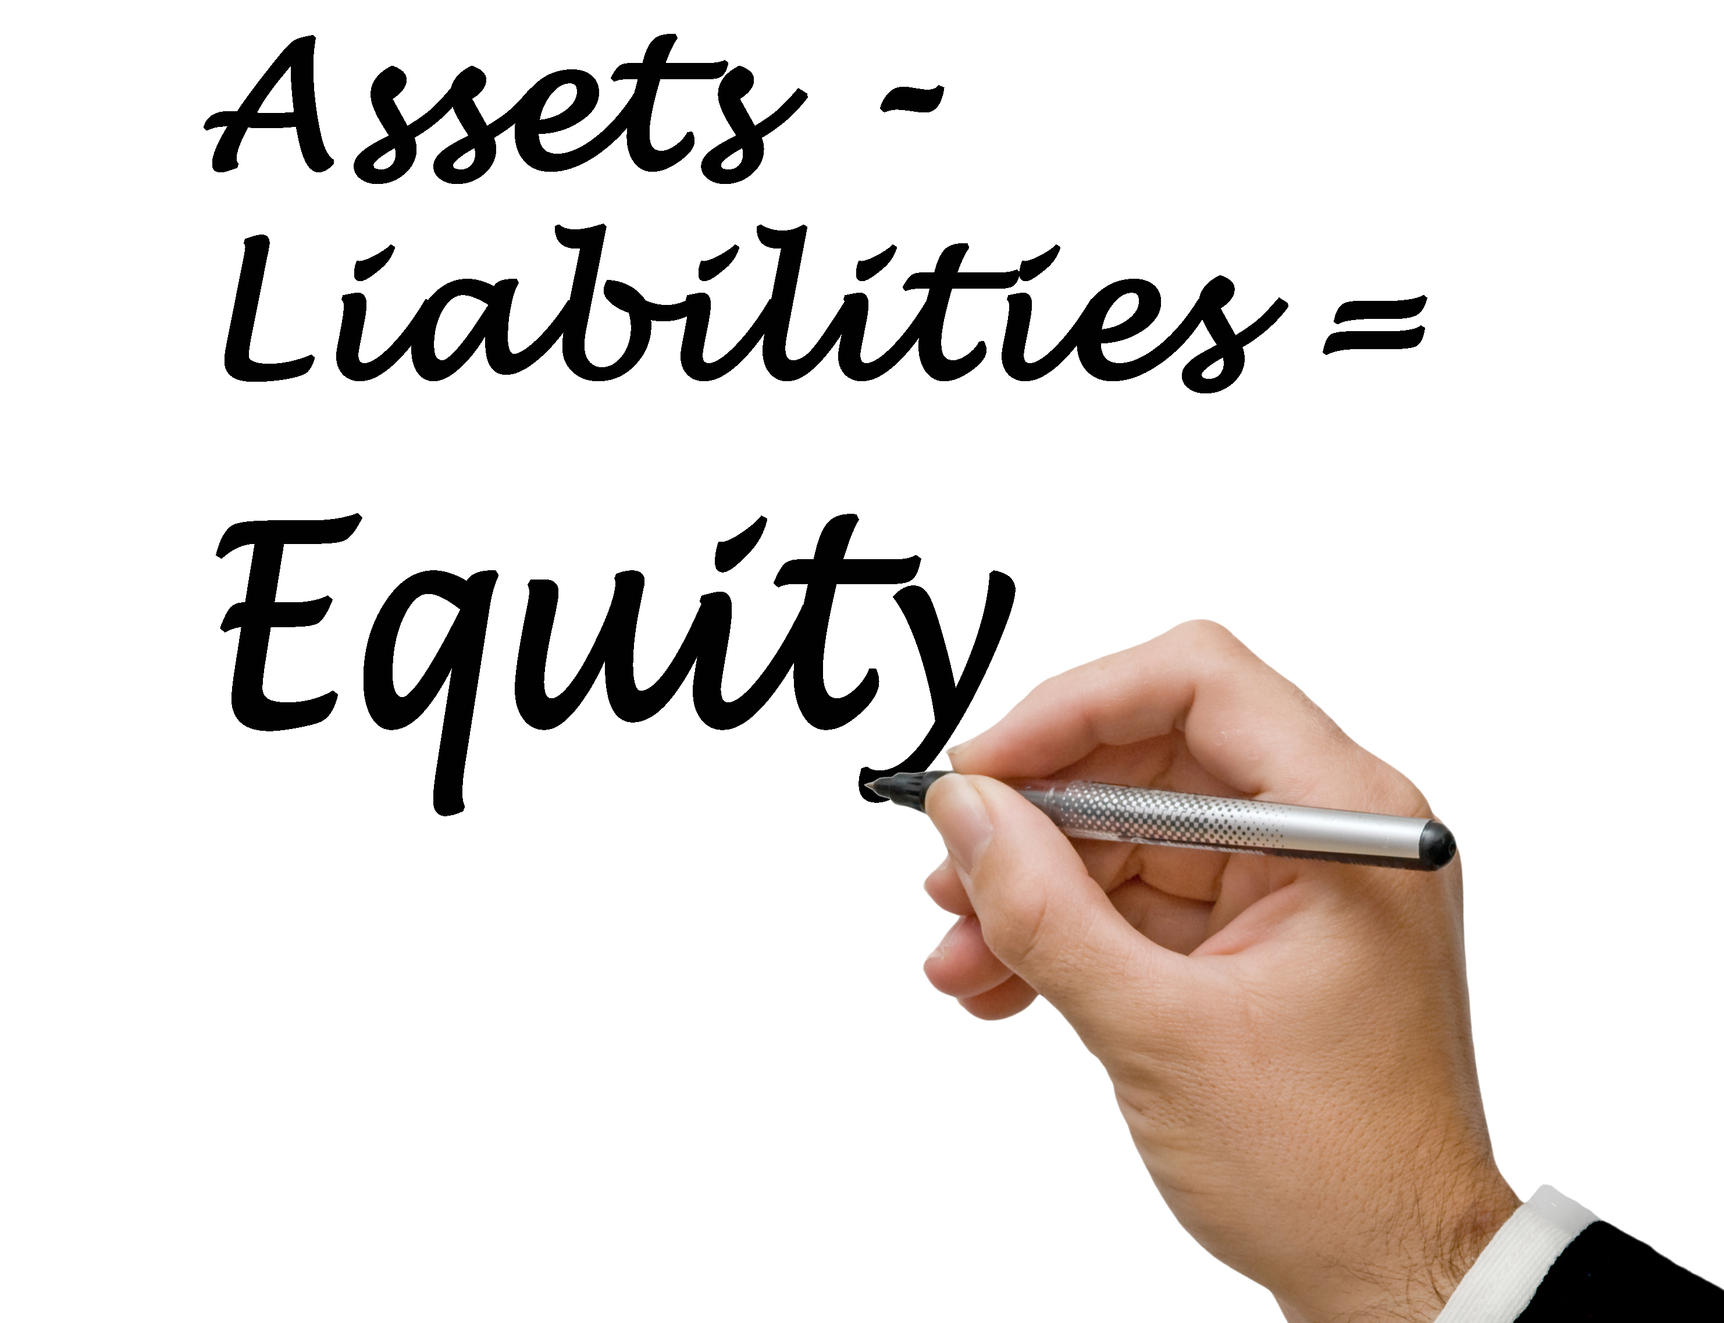 owners equity Definition: owner's equity, often called net assets, is the owners' claim to company assets after all of the liabilities have been paid off in other words, if the business assets were liquidated to pay off creditors, the excess money left over would be considered owner's equity.